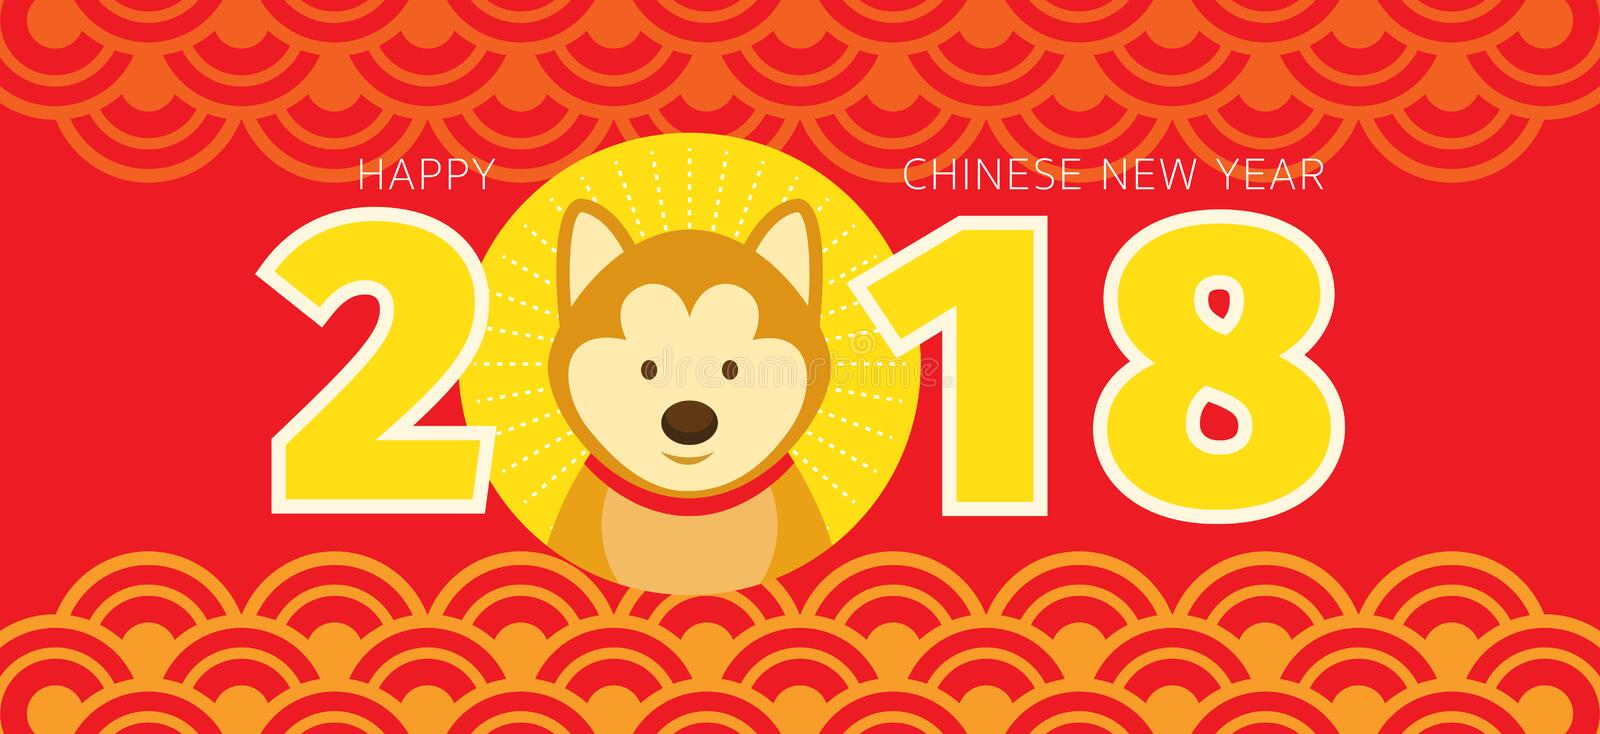 Download Shiba Inu Dog, Chinese New Year 2018 Stock Vector - Illustration of wealth, chinese: 107557288